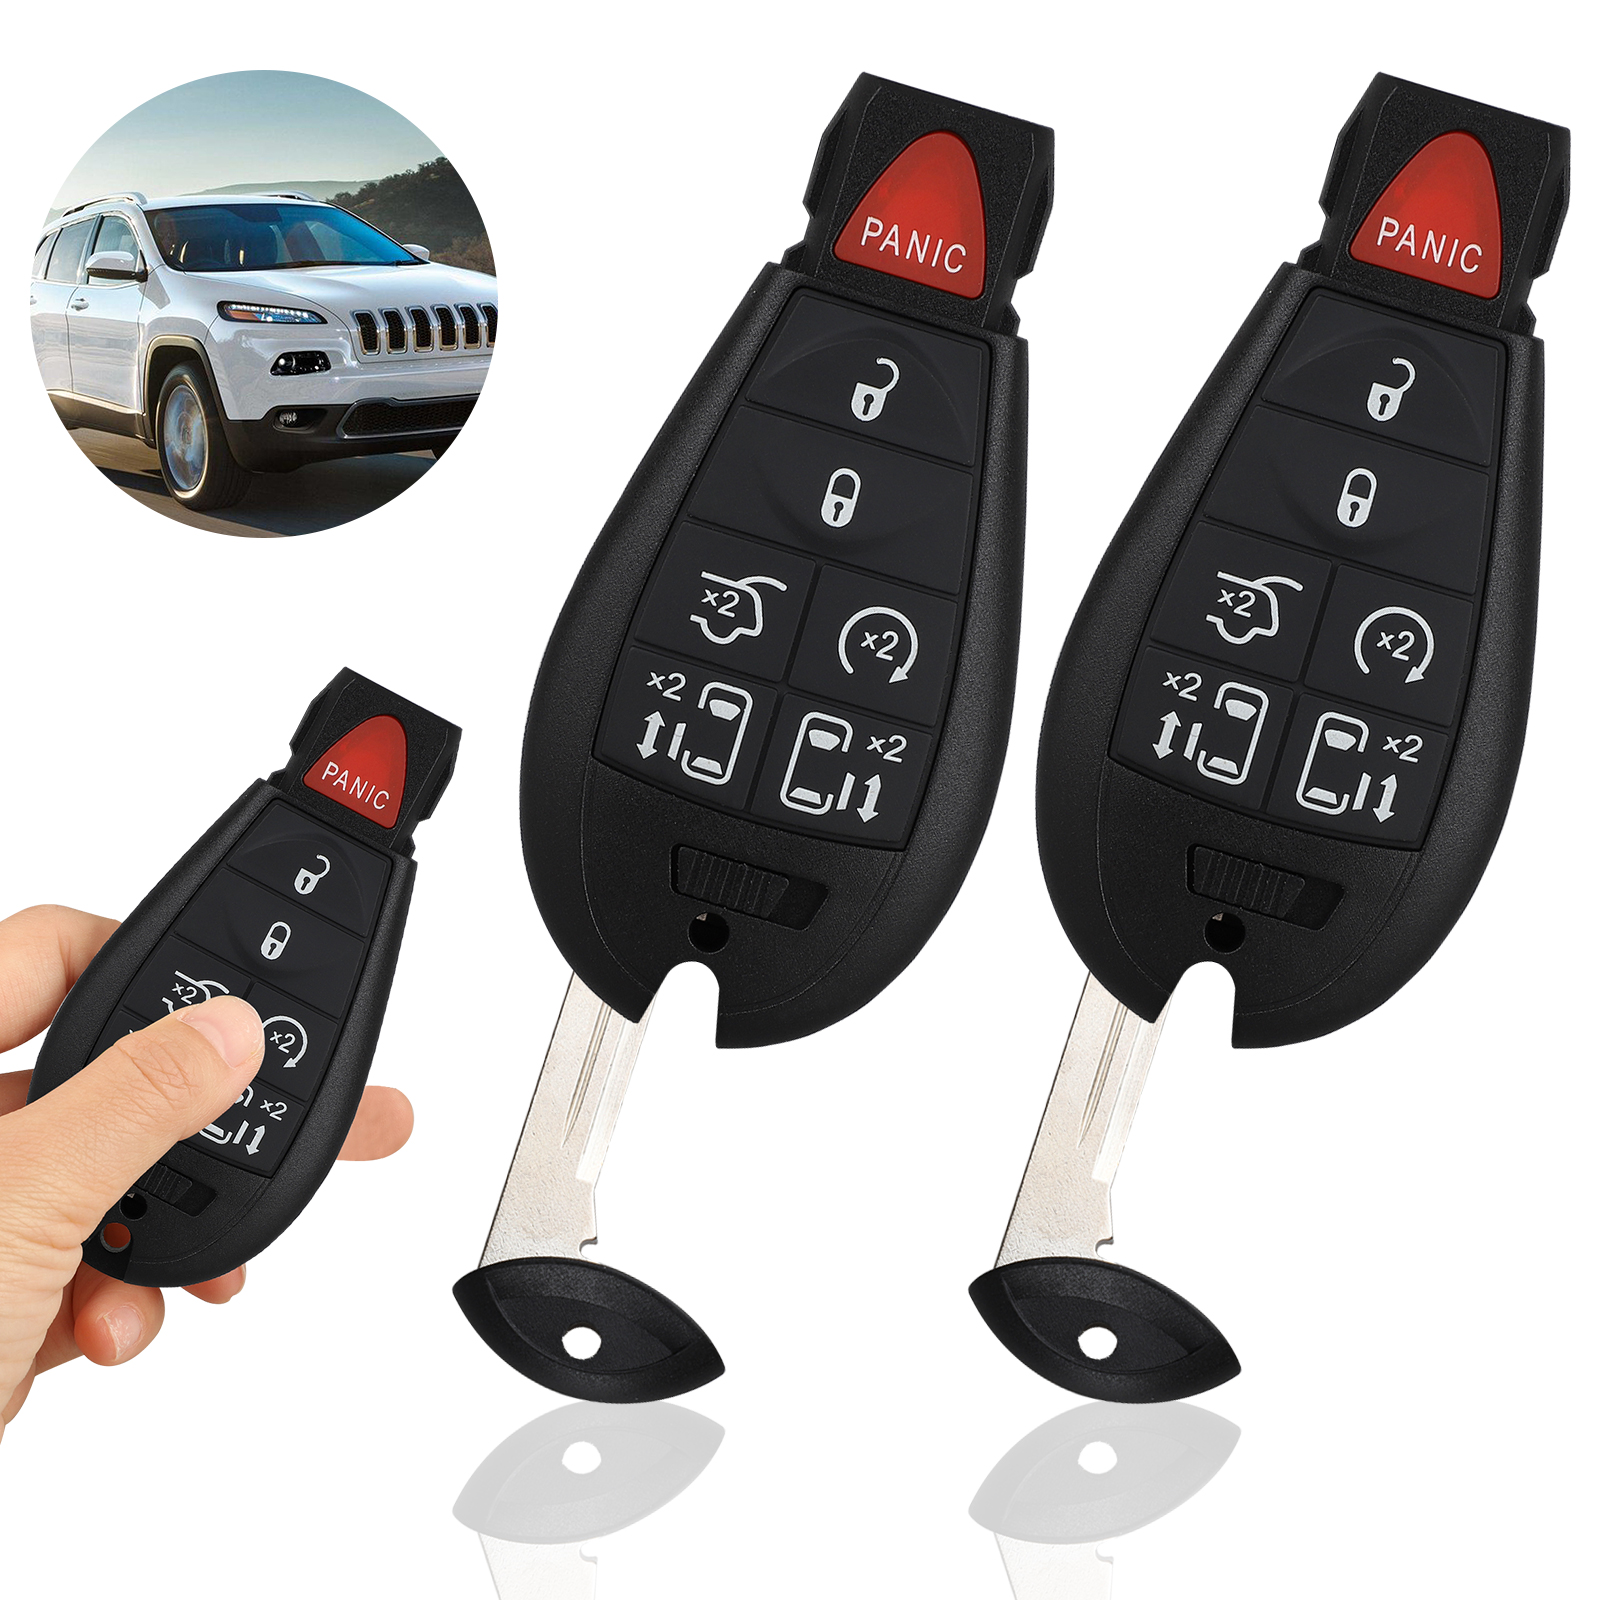 IYZ-C01C For Chrysler Town Country Dodge Grand Caravan Volkswagen Routan 1 New Keyless Entry 6 Buttons Remote Start Car Key Fob M3N5WY783X